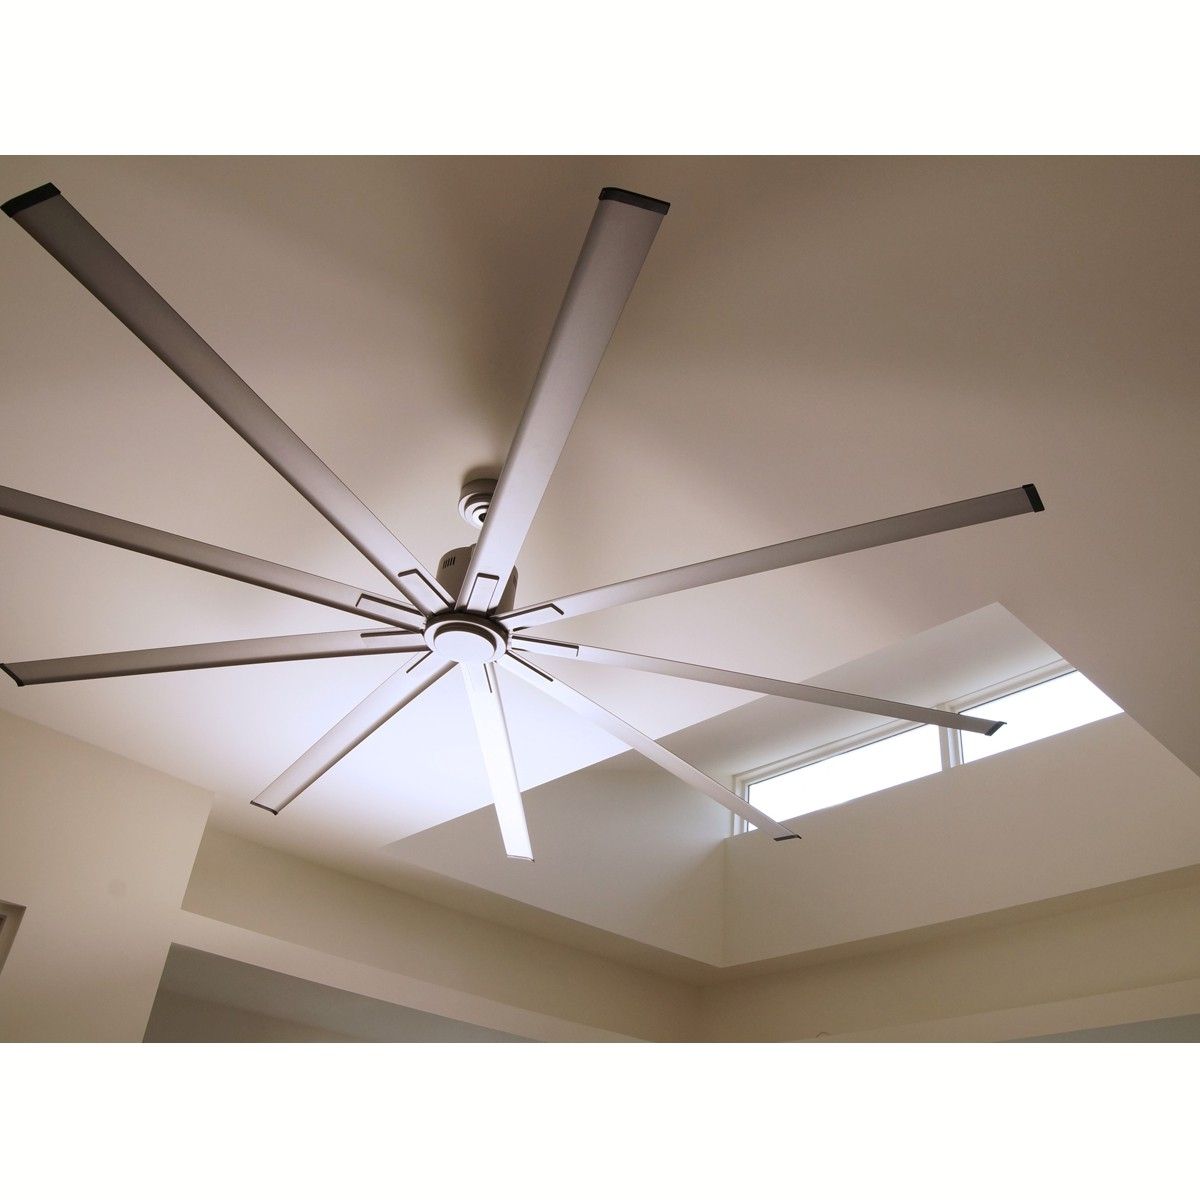 20 72 Ceiling Fan, 72 In 8 Blade Brushed Nickel Led Ceiling Fan With In Famous 72 Predator Bronze Outdoor Ceiling Fans With Light Kit (Gallery 15 of 20)